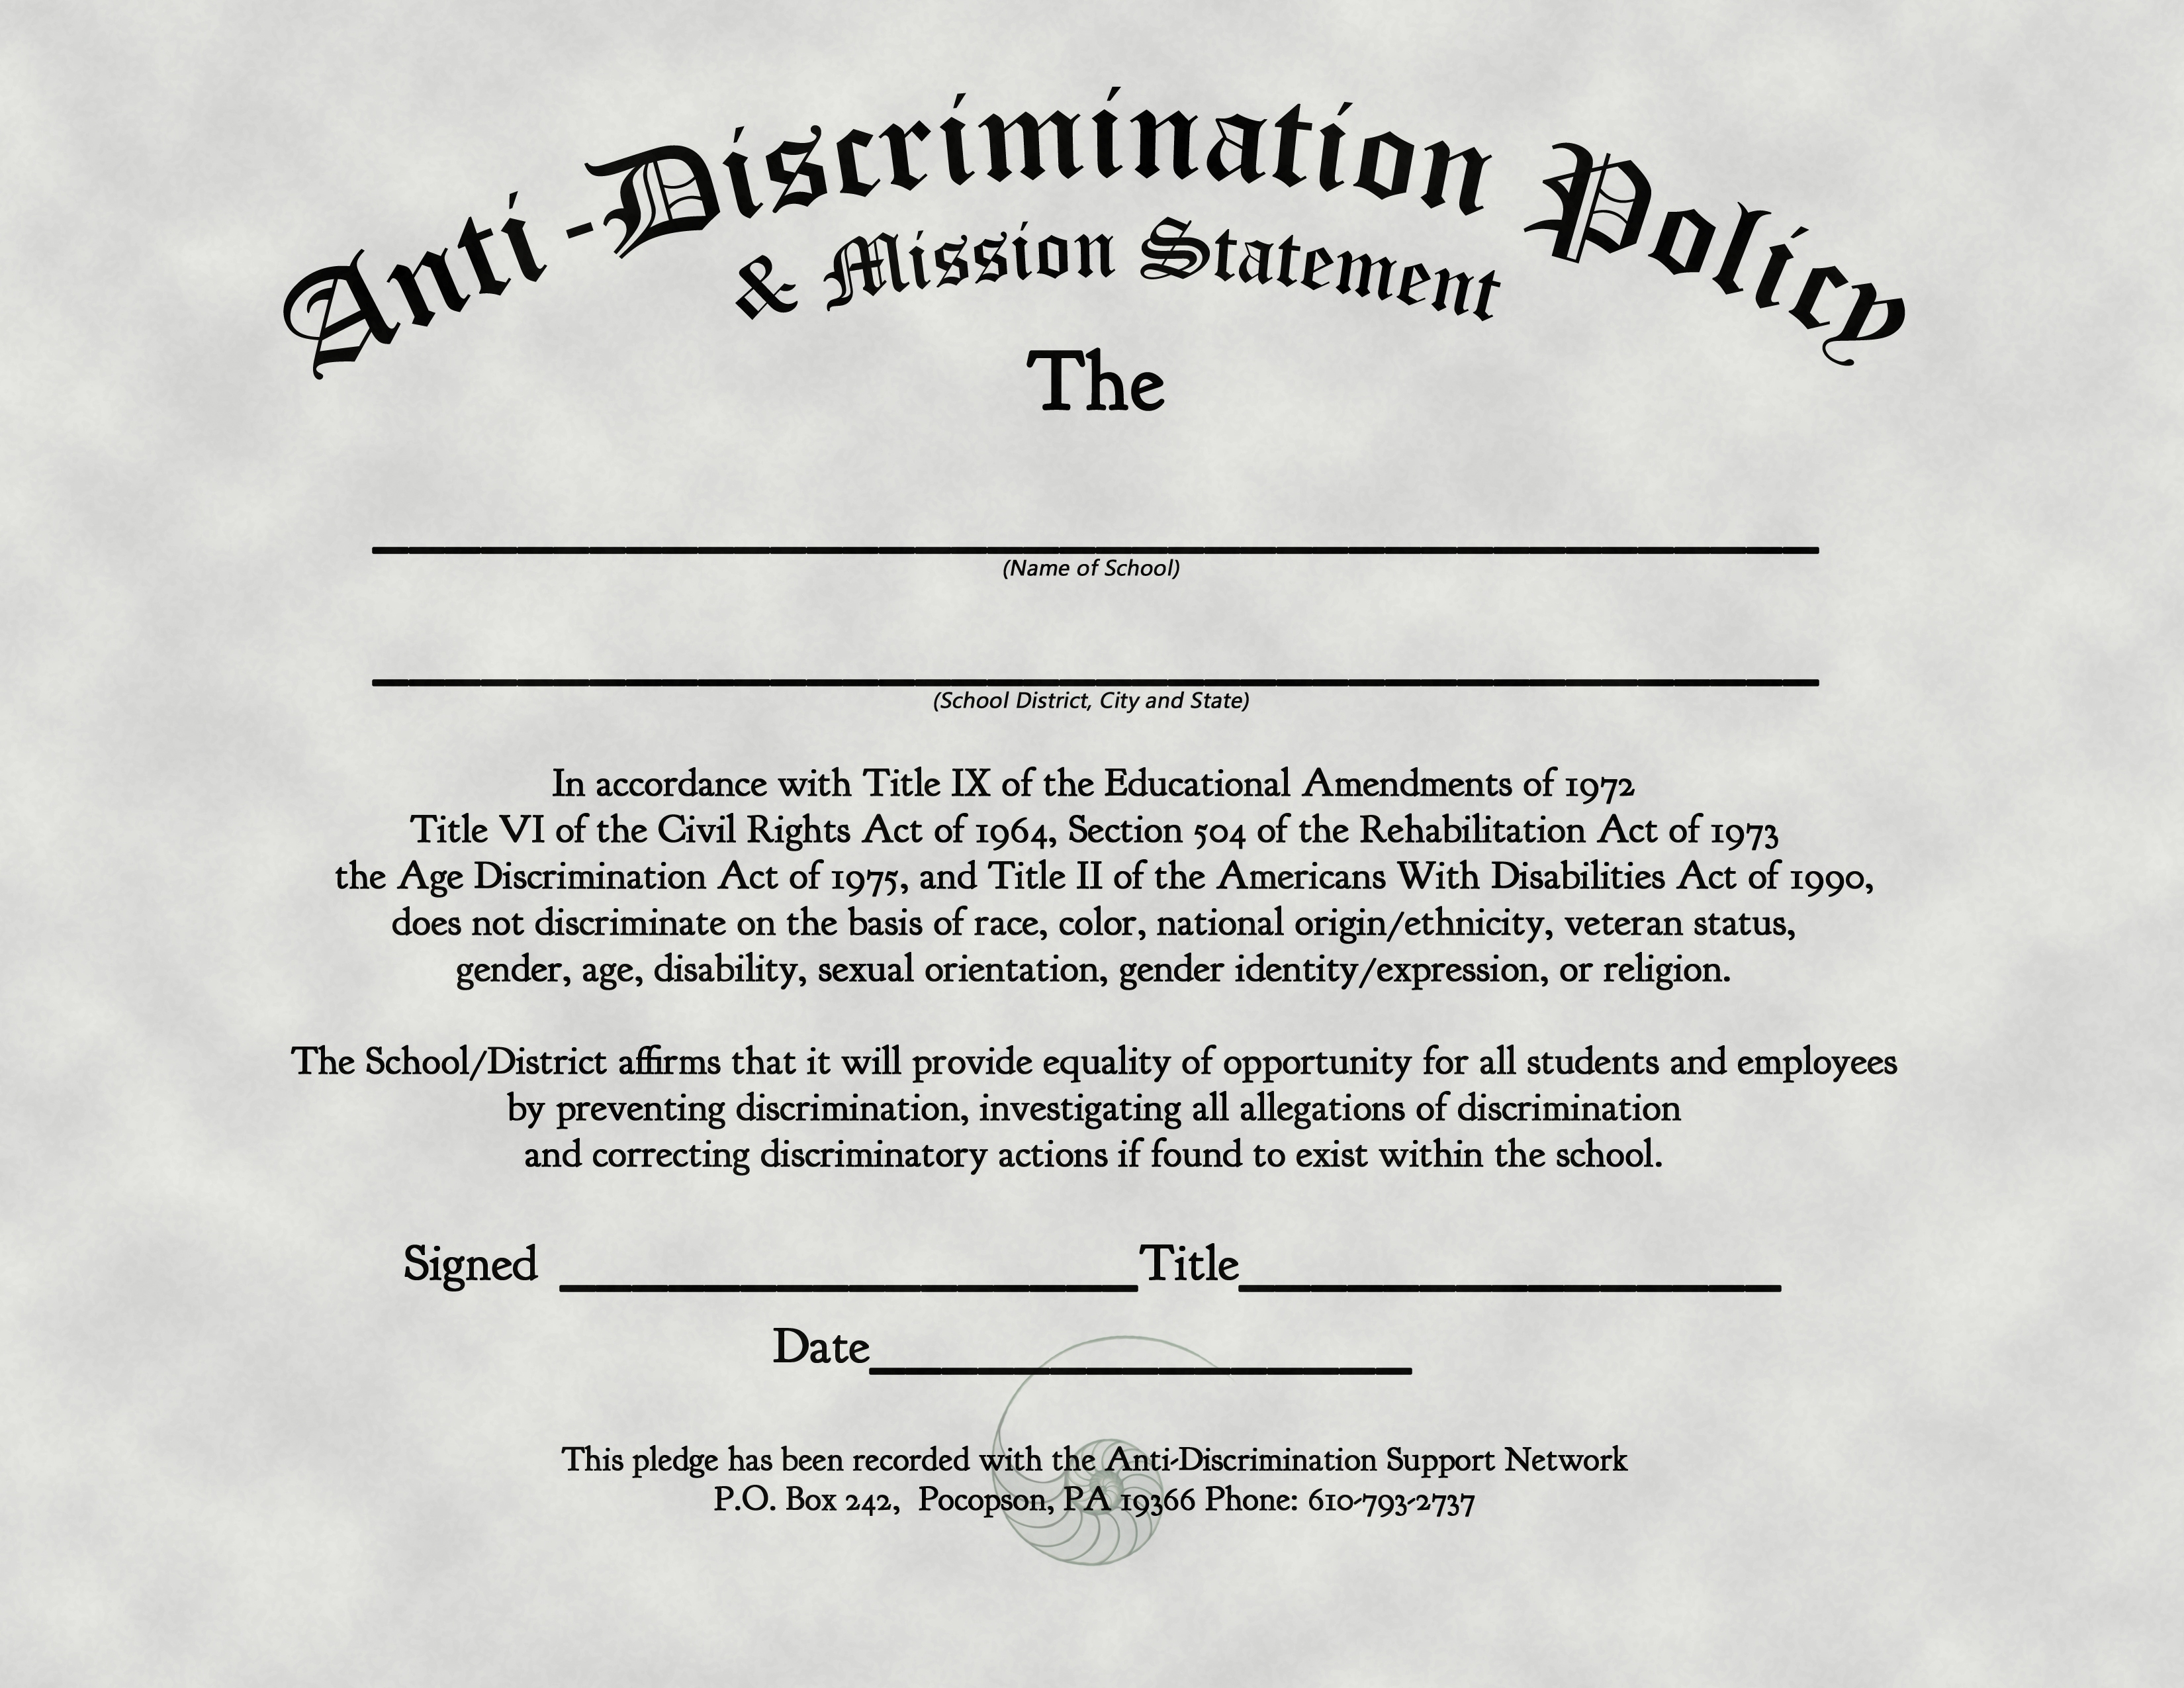 anti discriminatory policy and mission statement